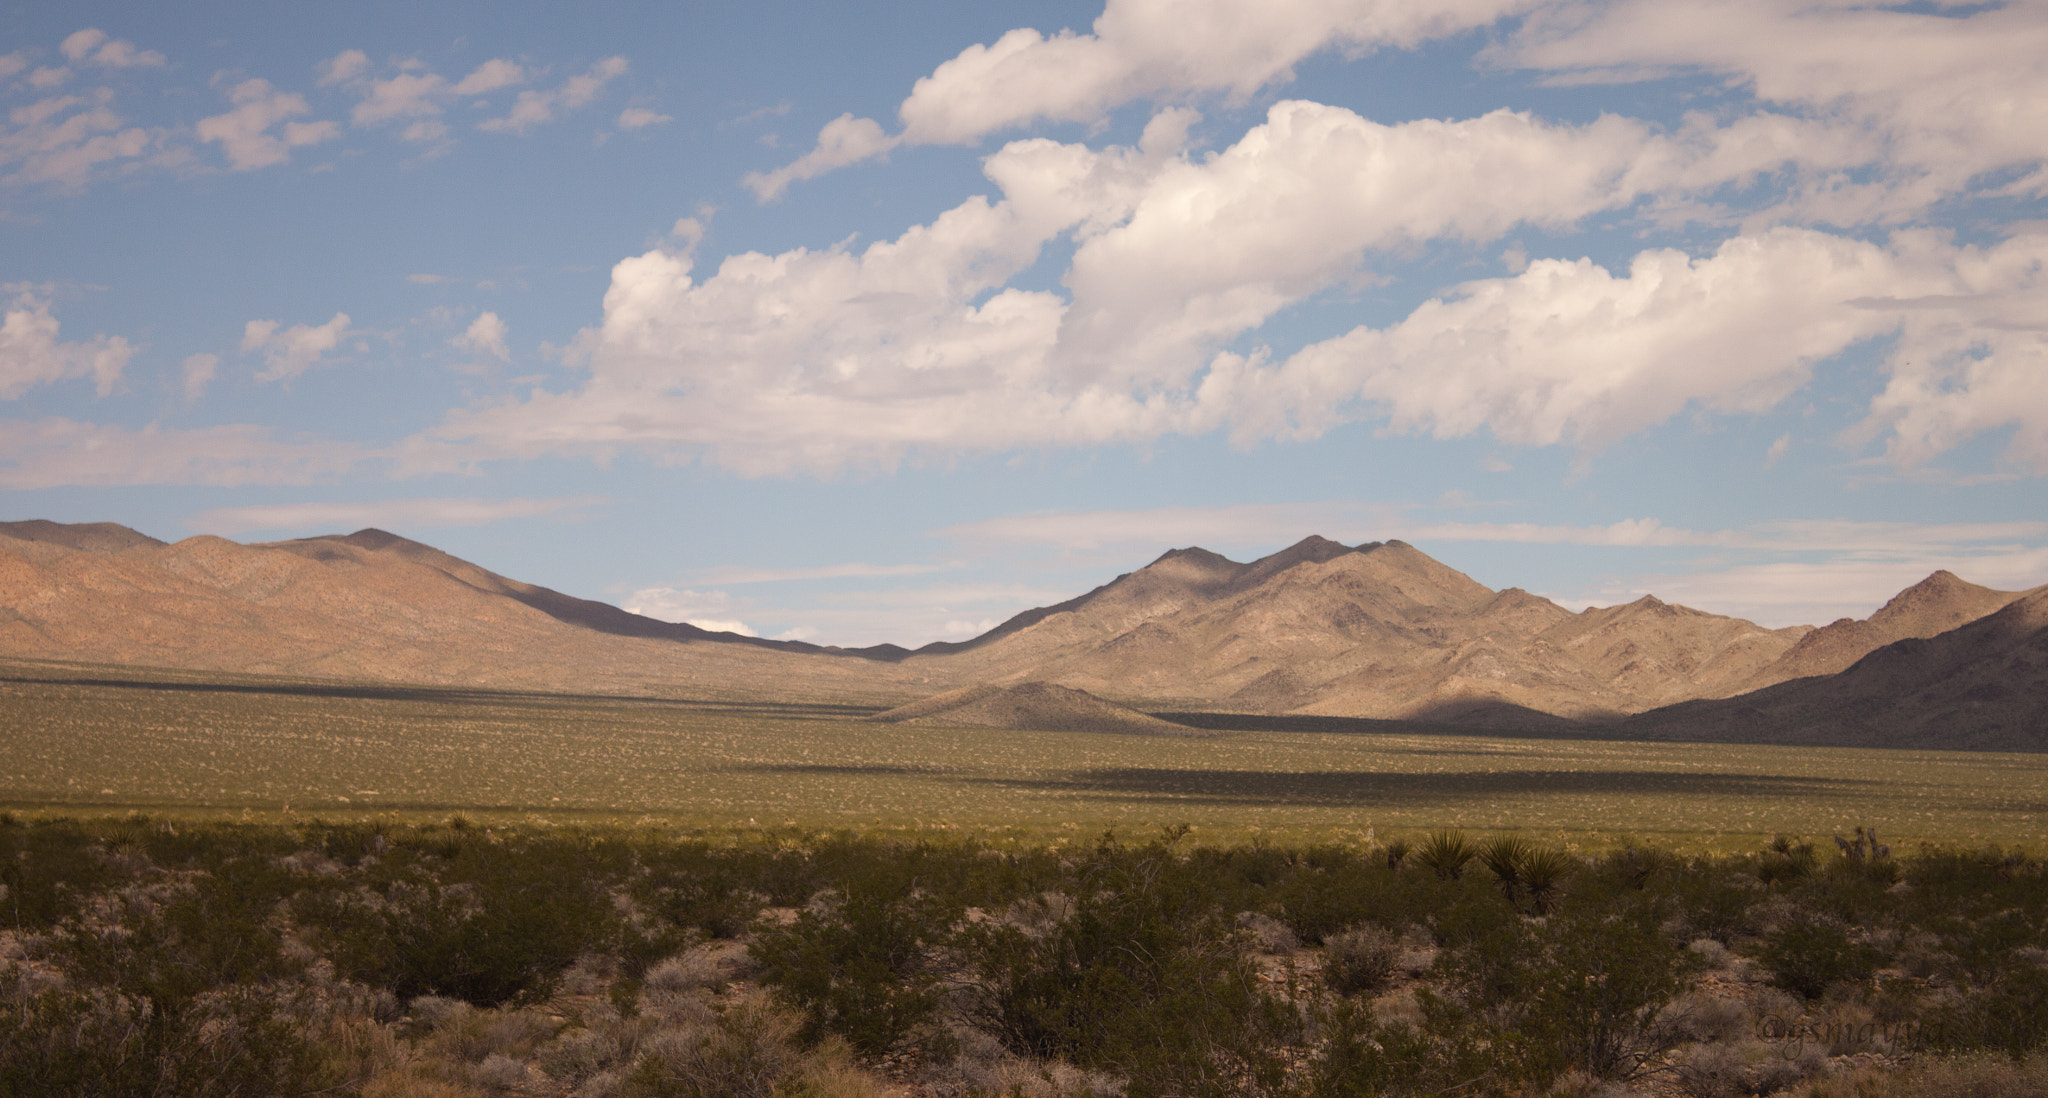 Photograph Morning at Mojave desert. by Guru S on 500px